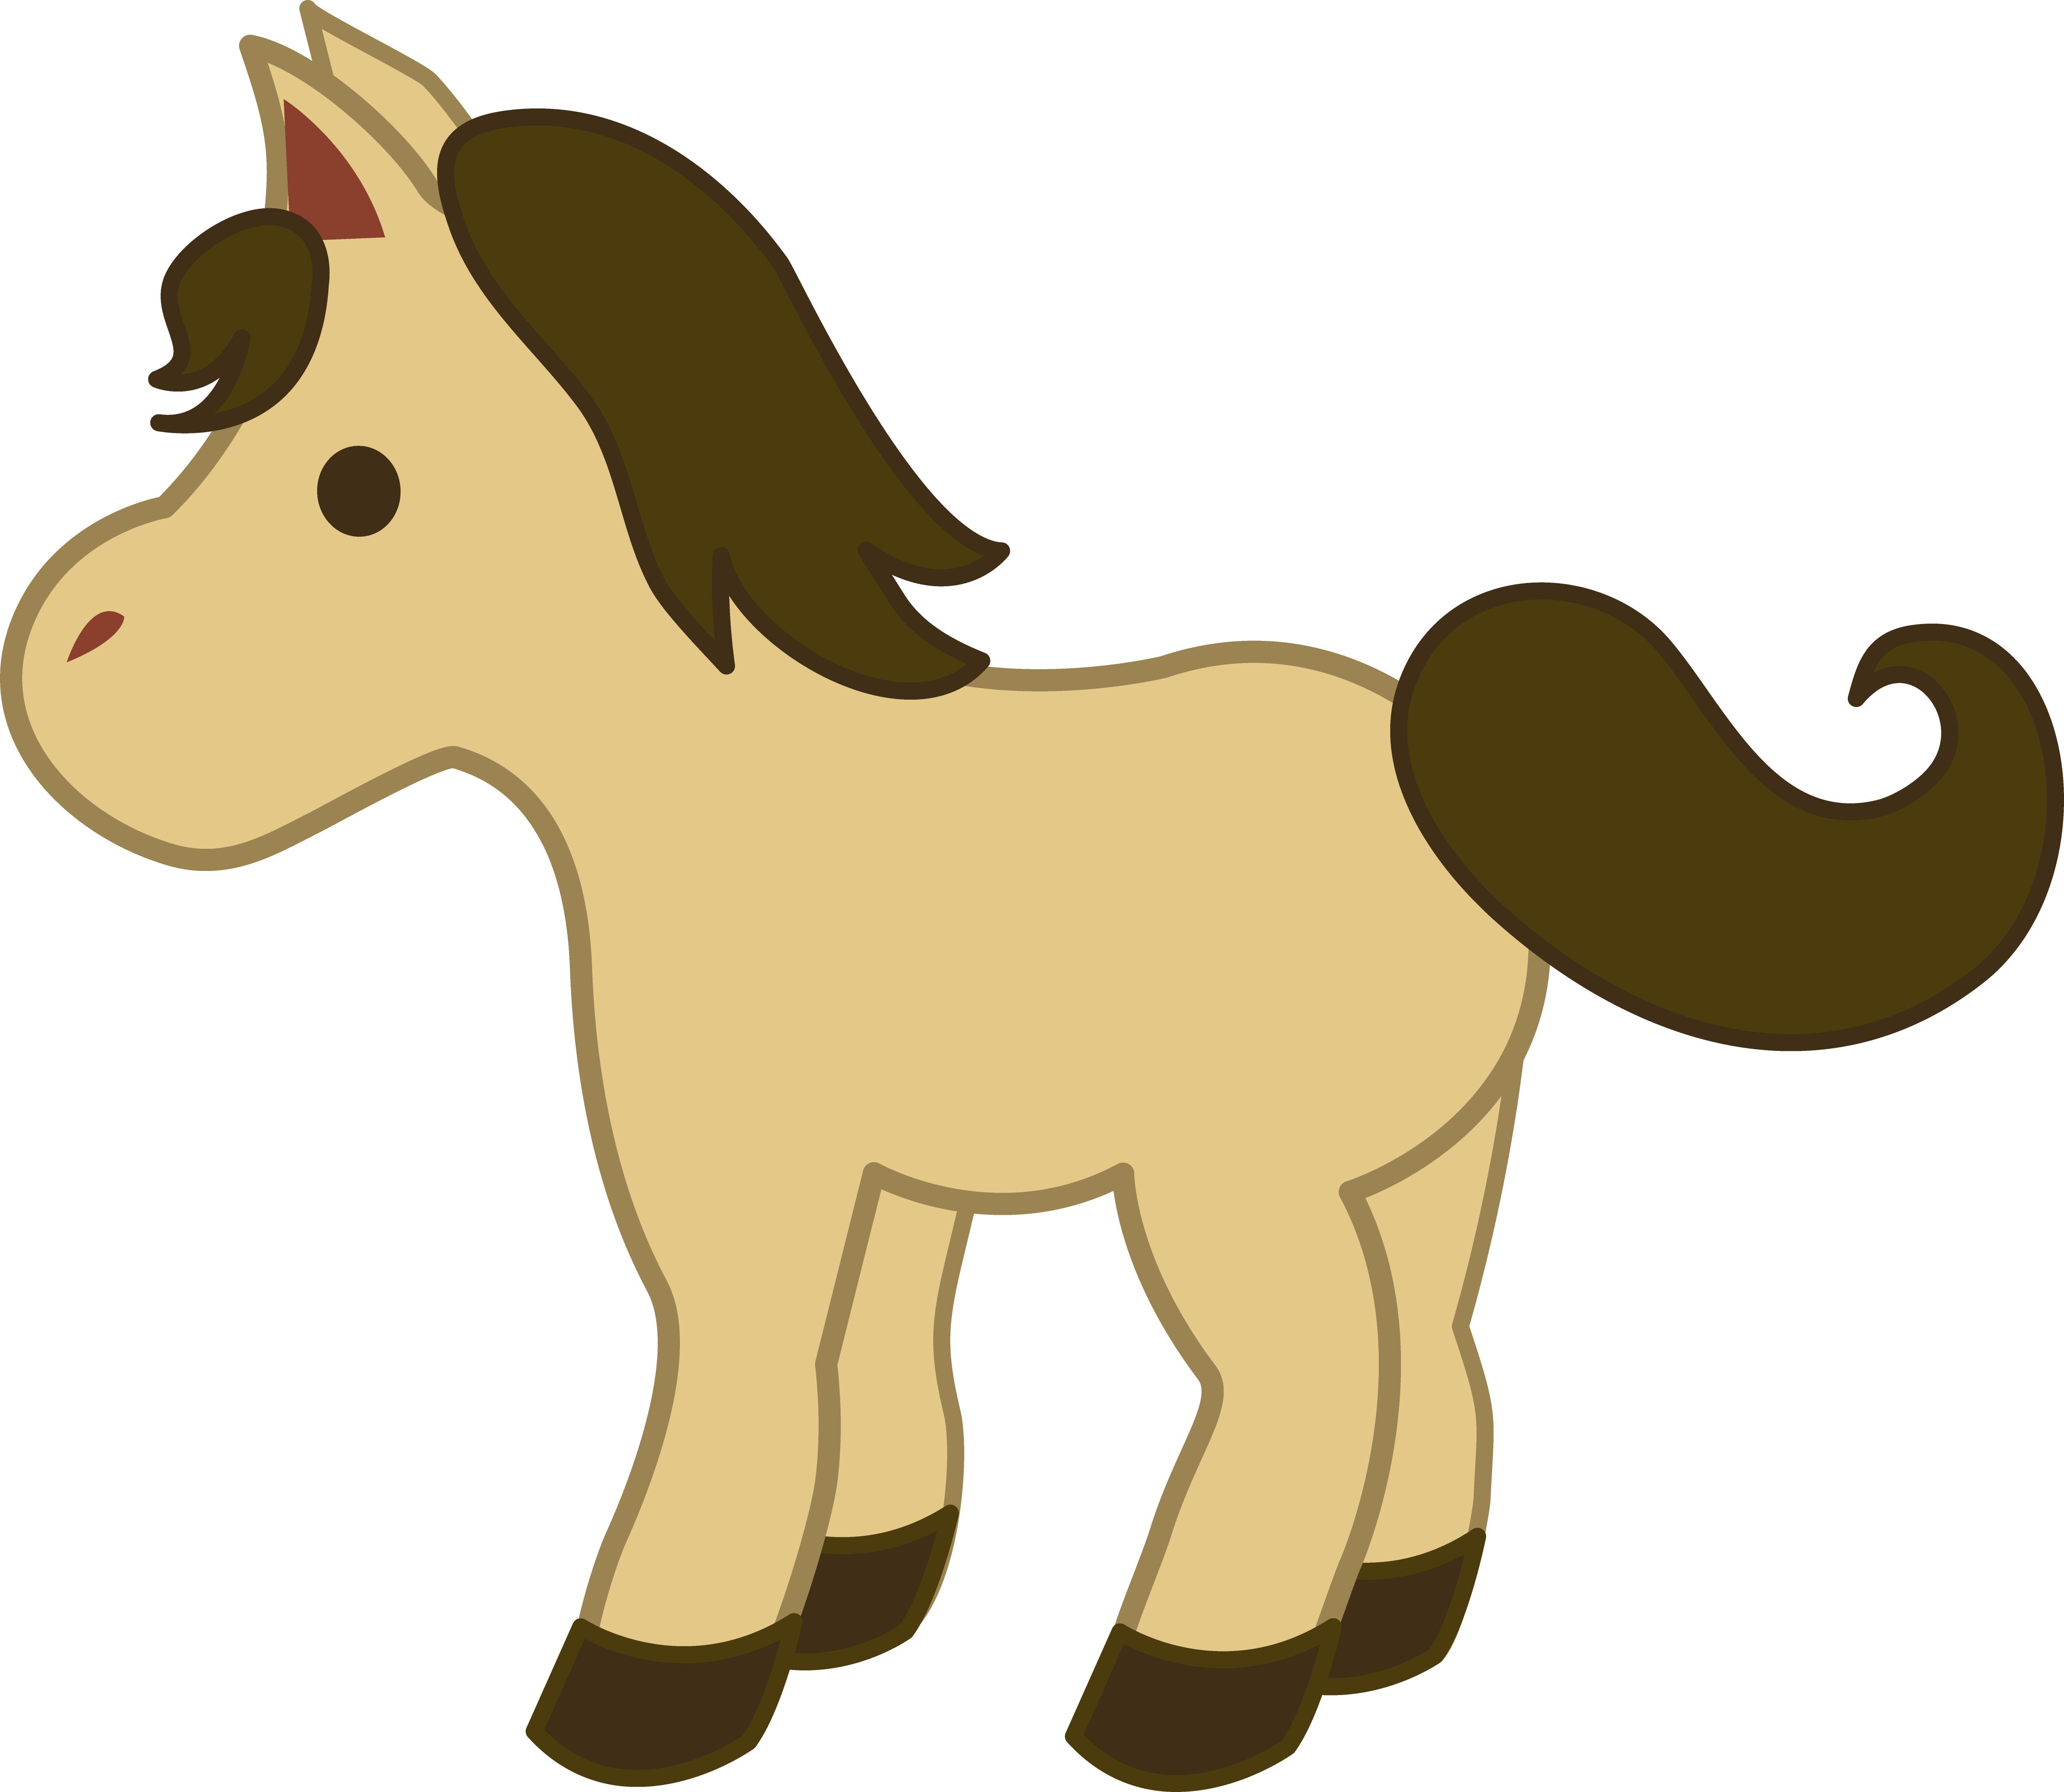 Simple gallery by stephen. Horse clipart house